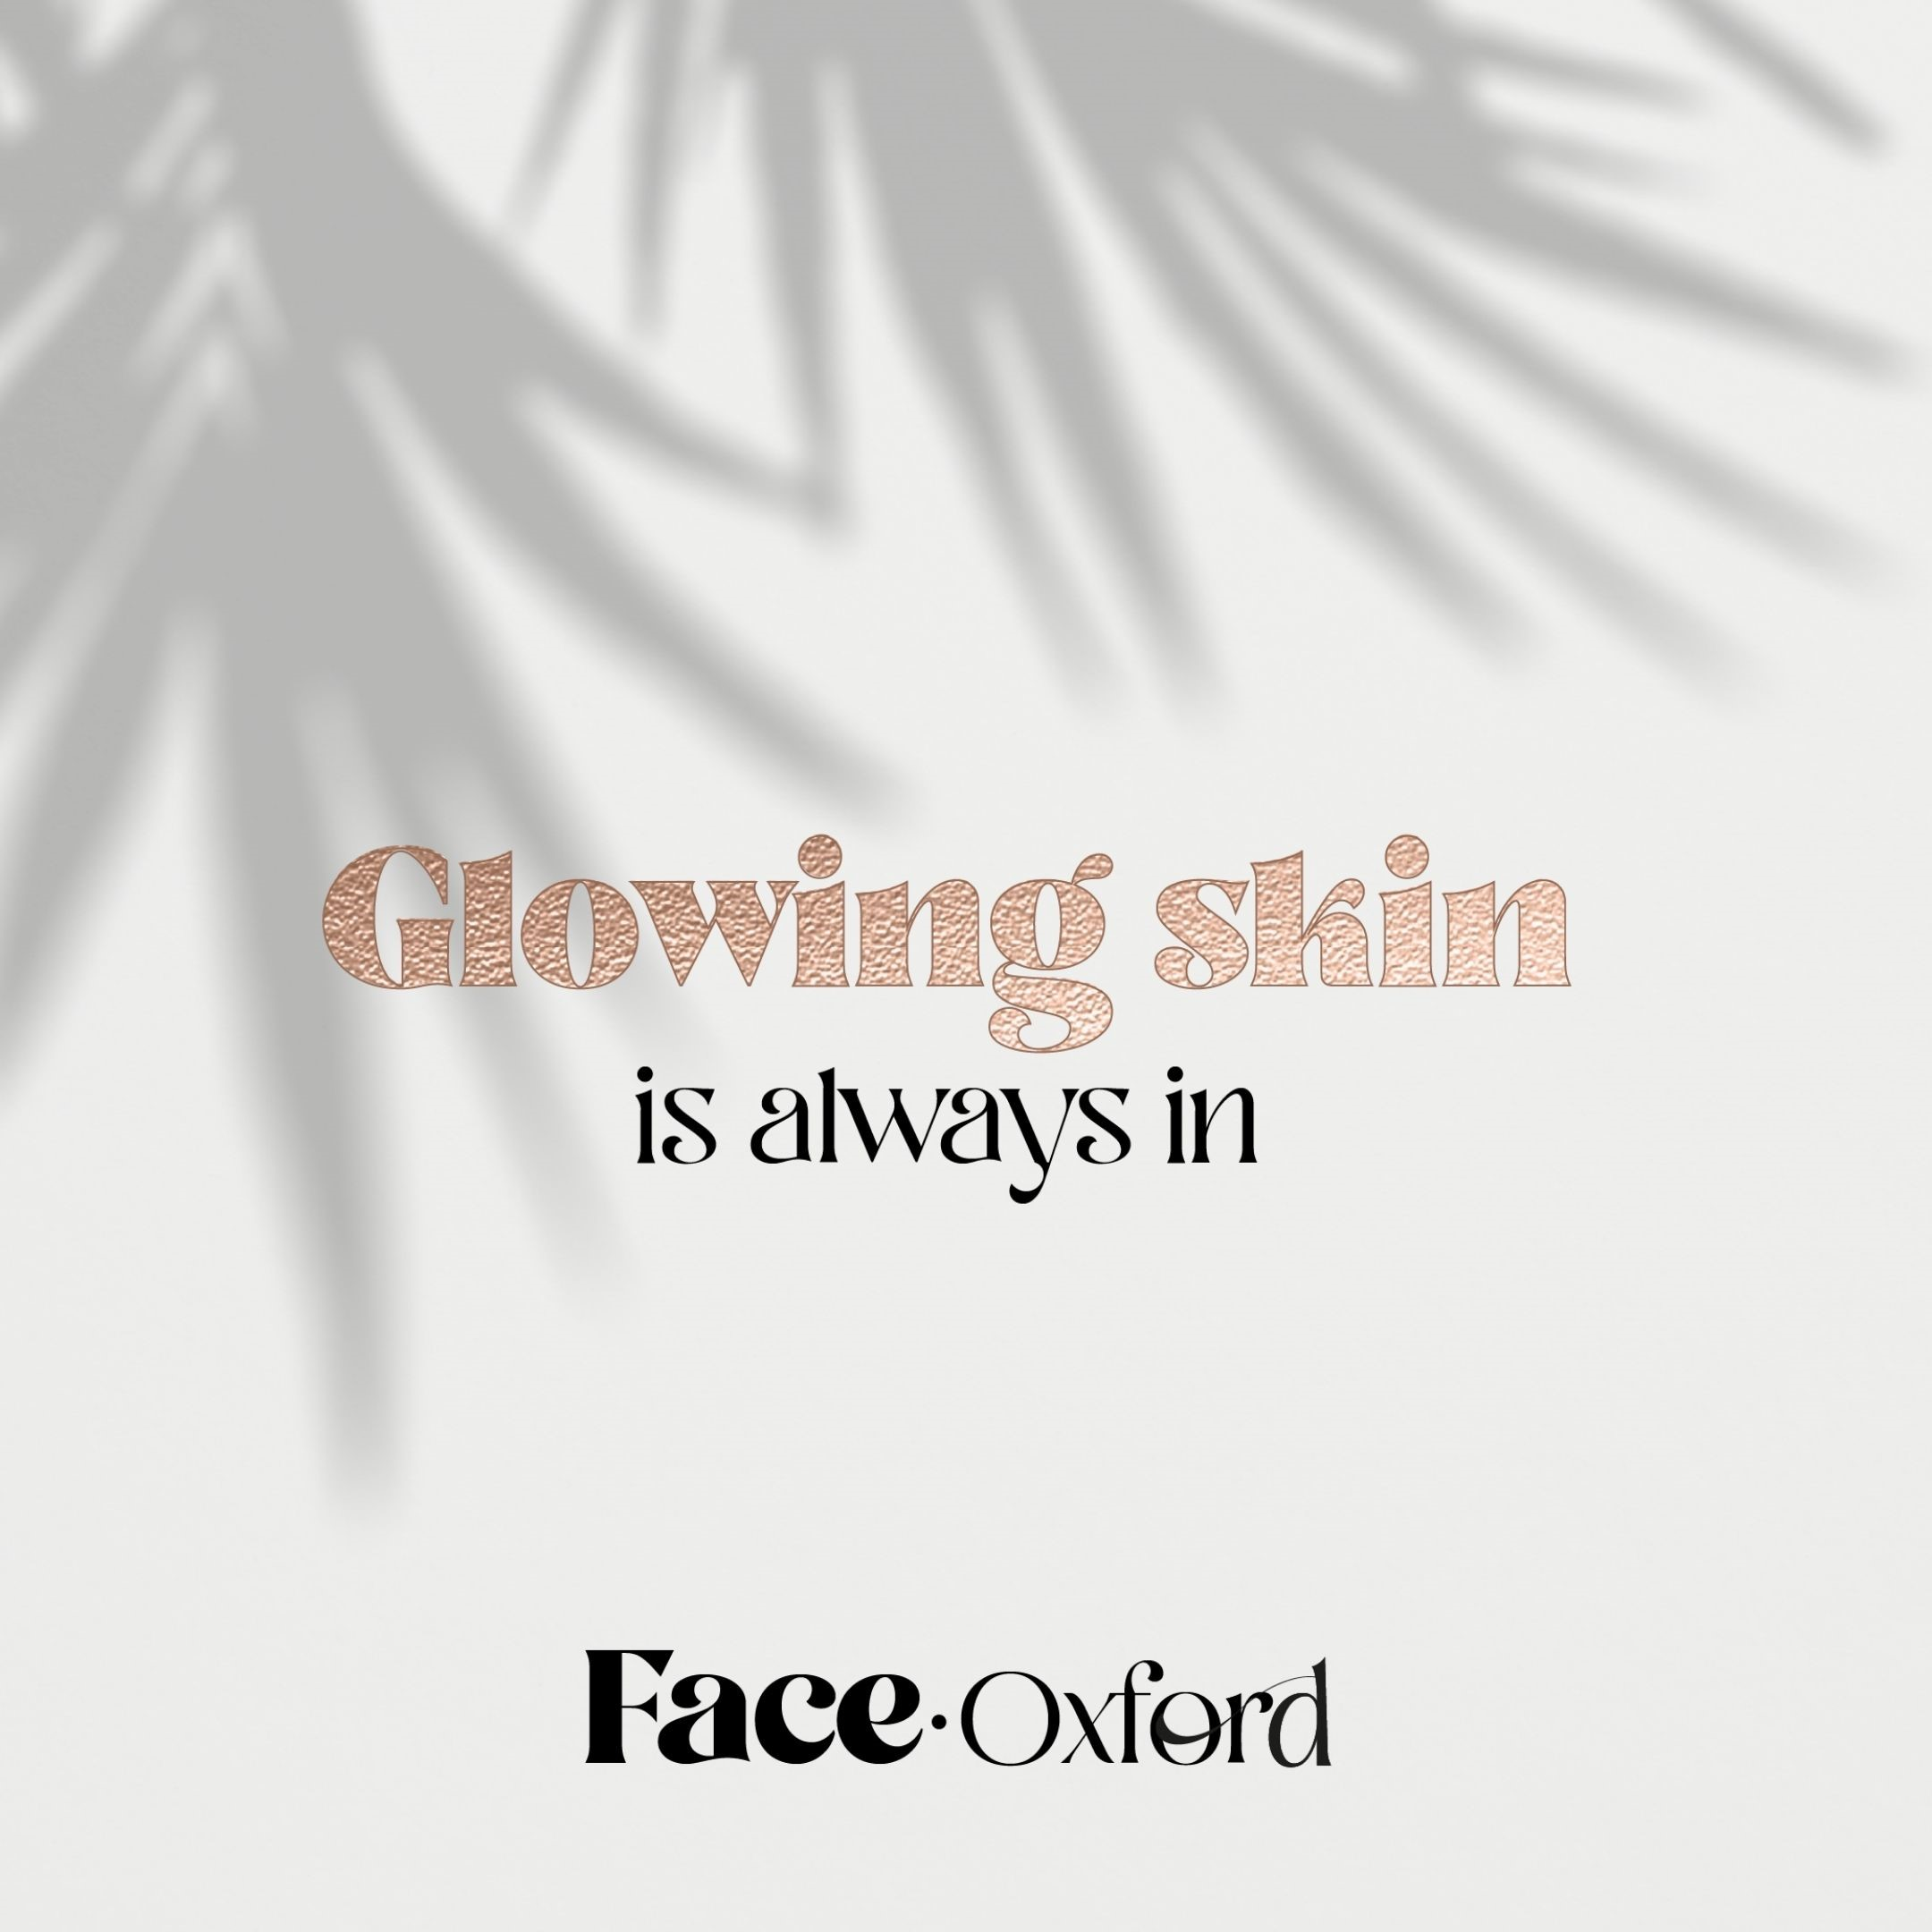 face-oxford-glowing